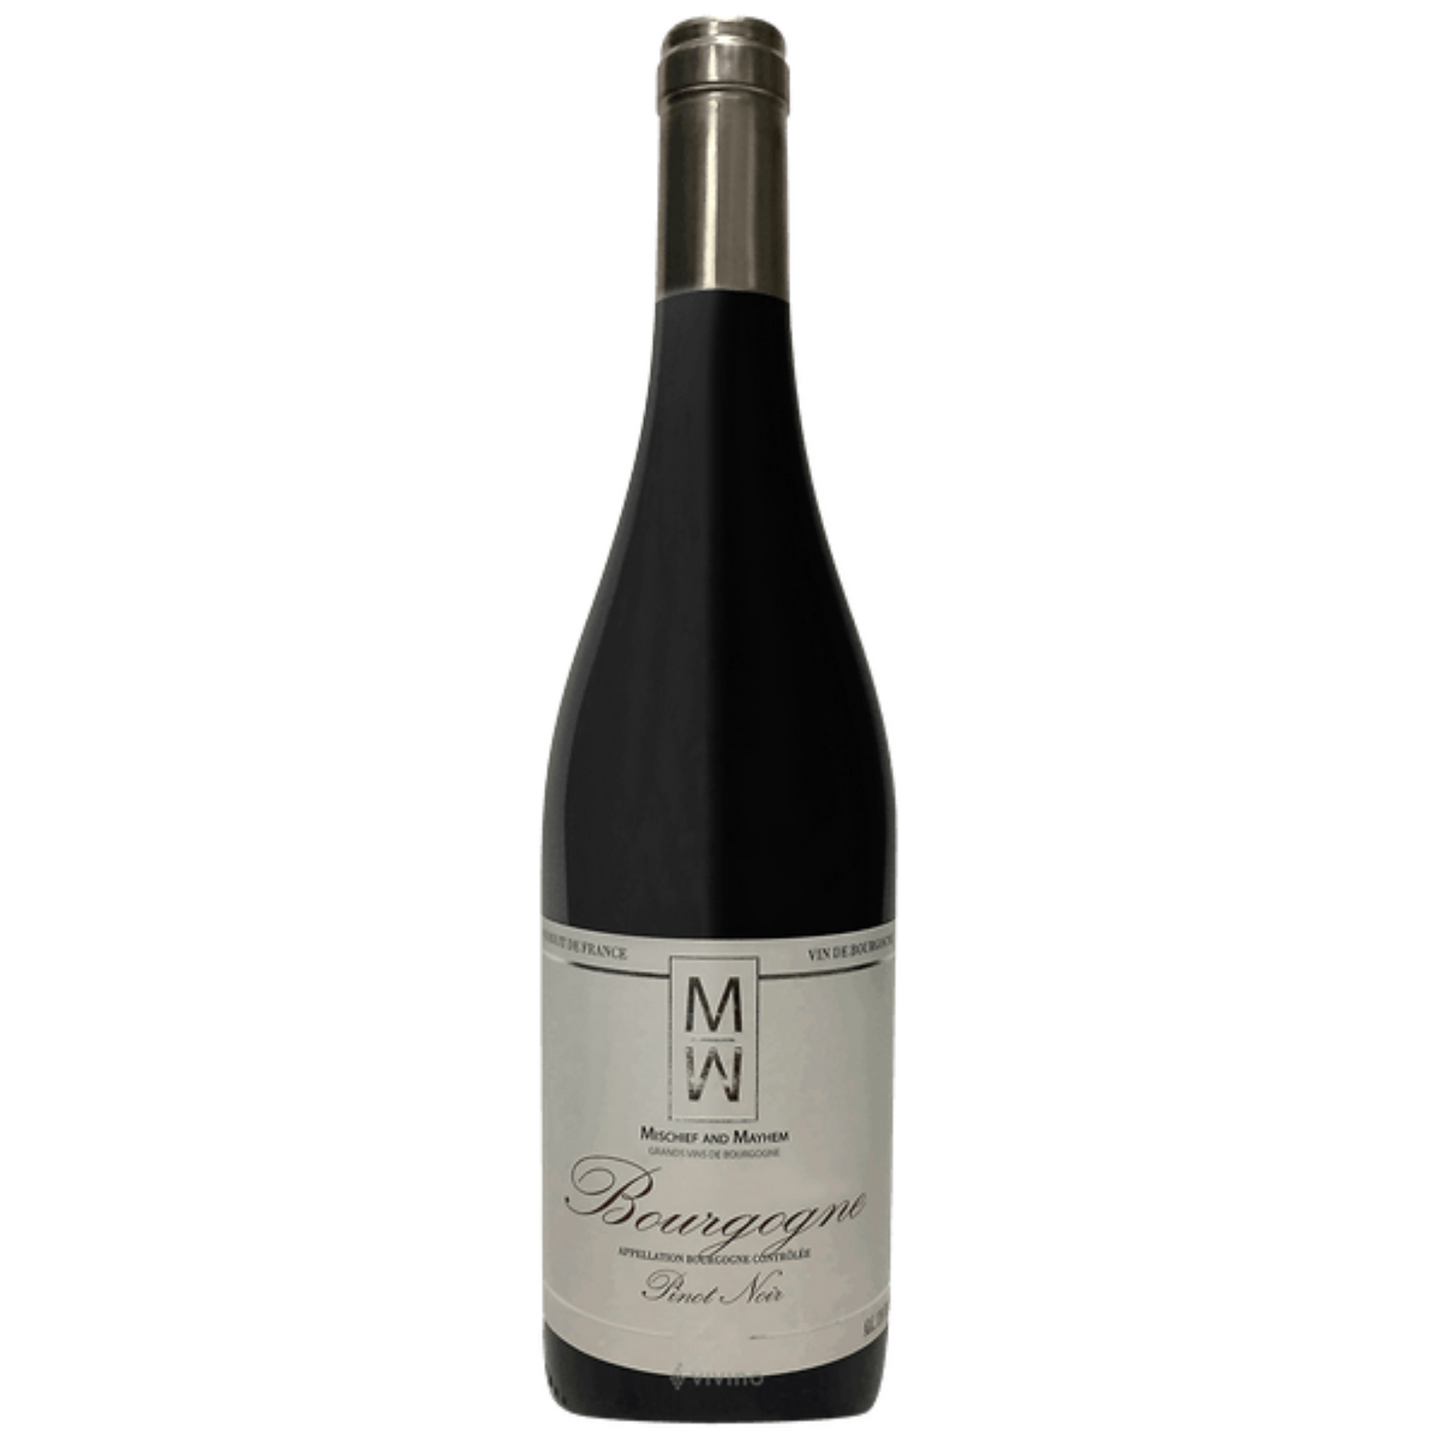 Mischief Mayhem Pinot Noir Burgundy France